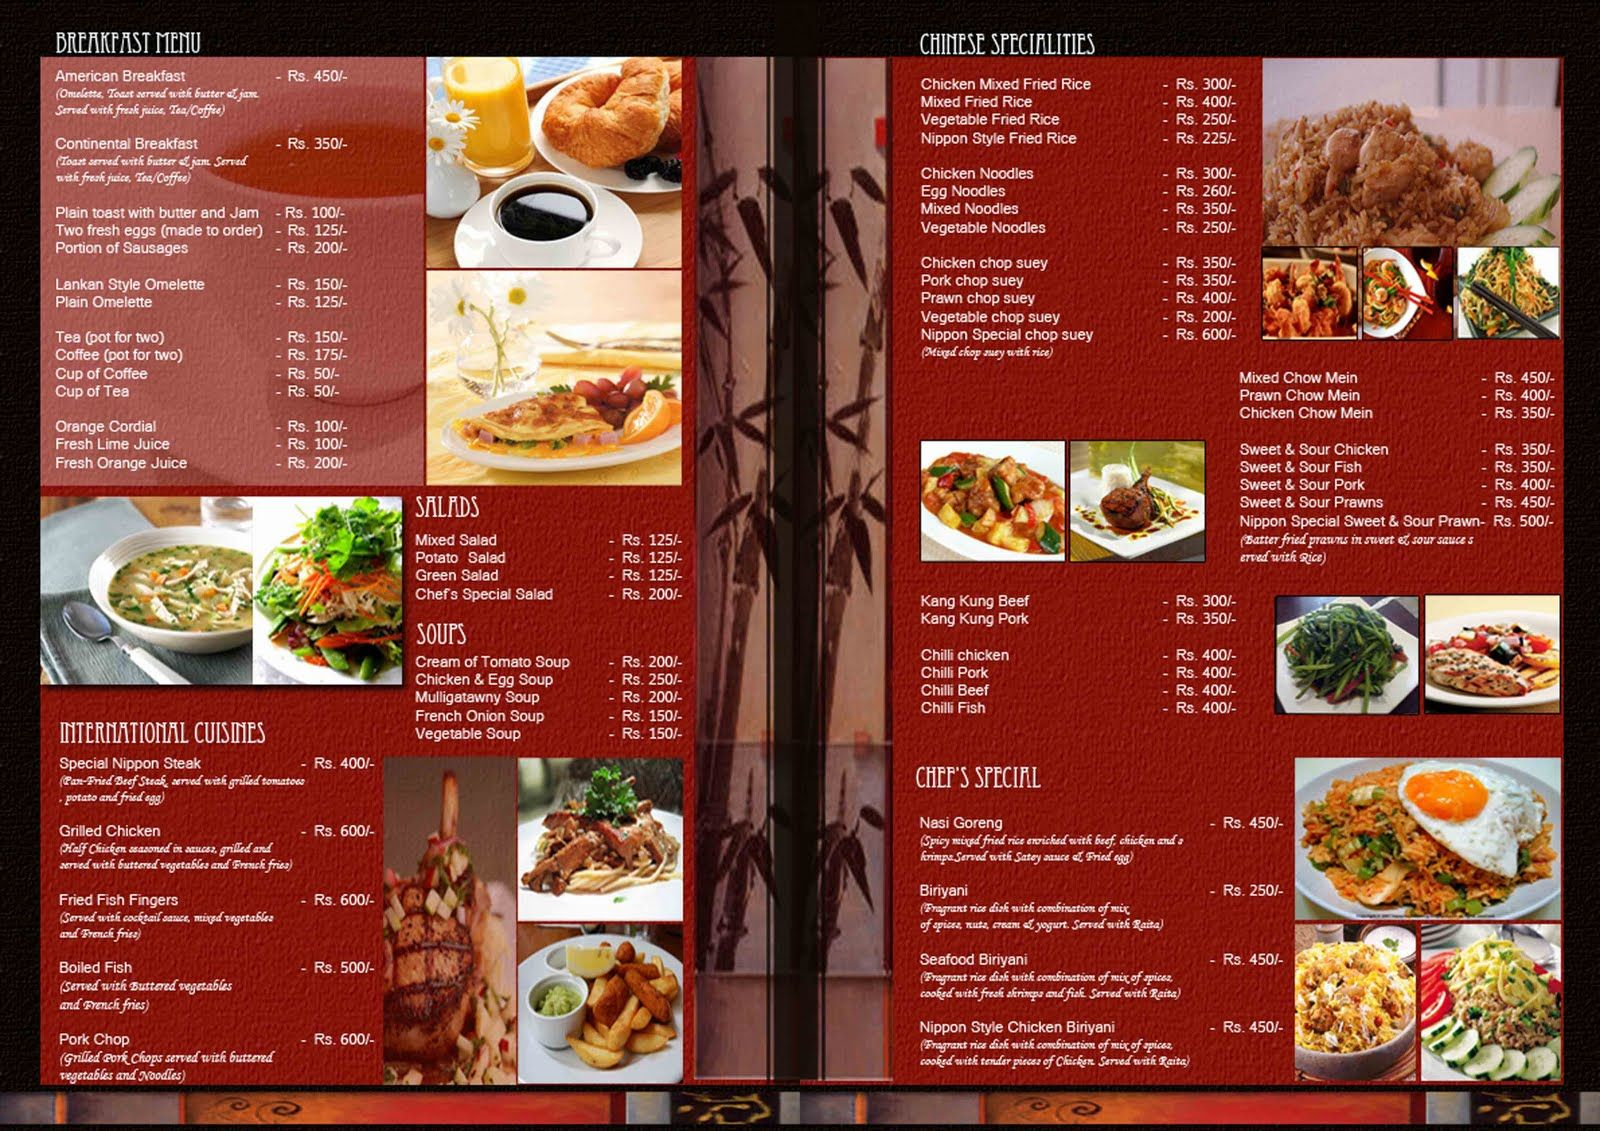 oriental restaurant menu design ideas restaurant menu design that can give you inspiration home design - Restaurant Menu Design Ideas